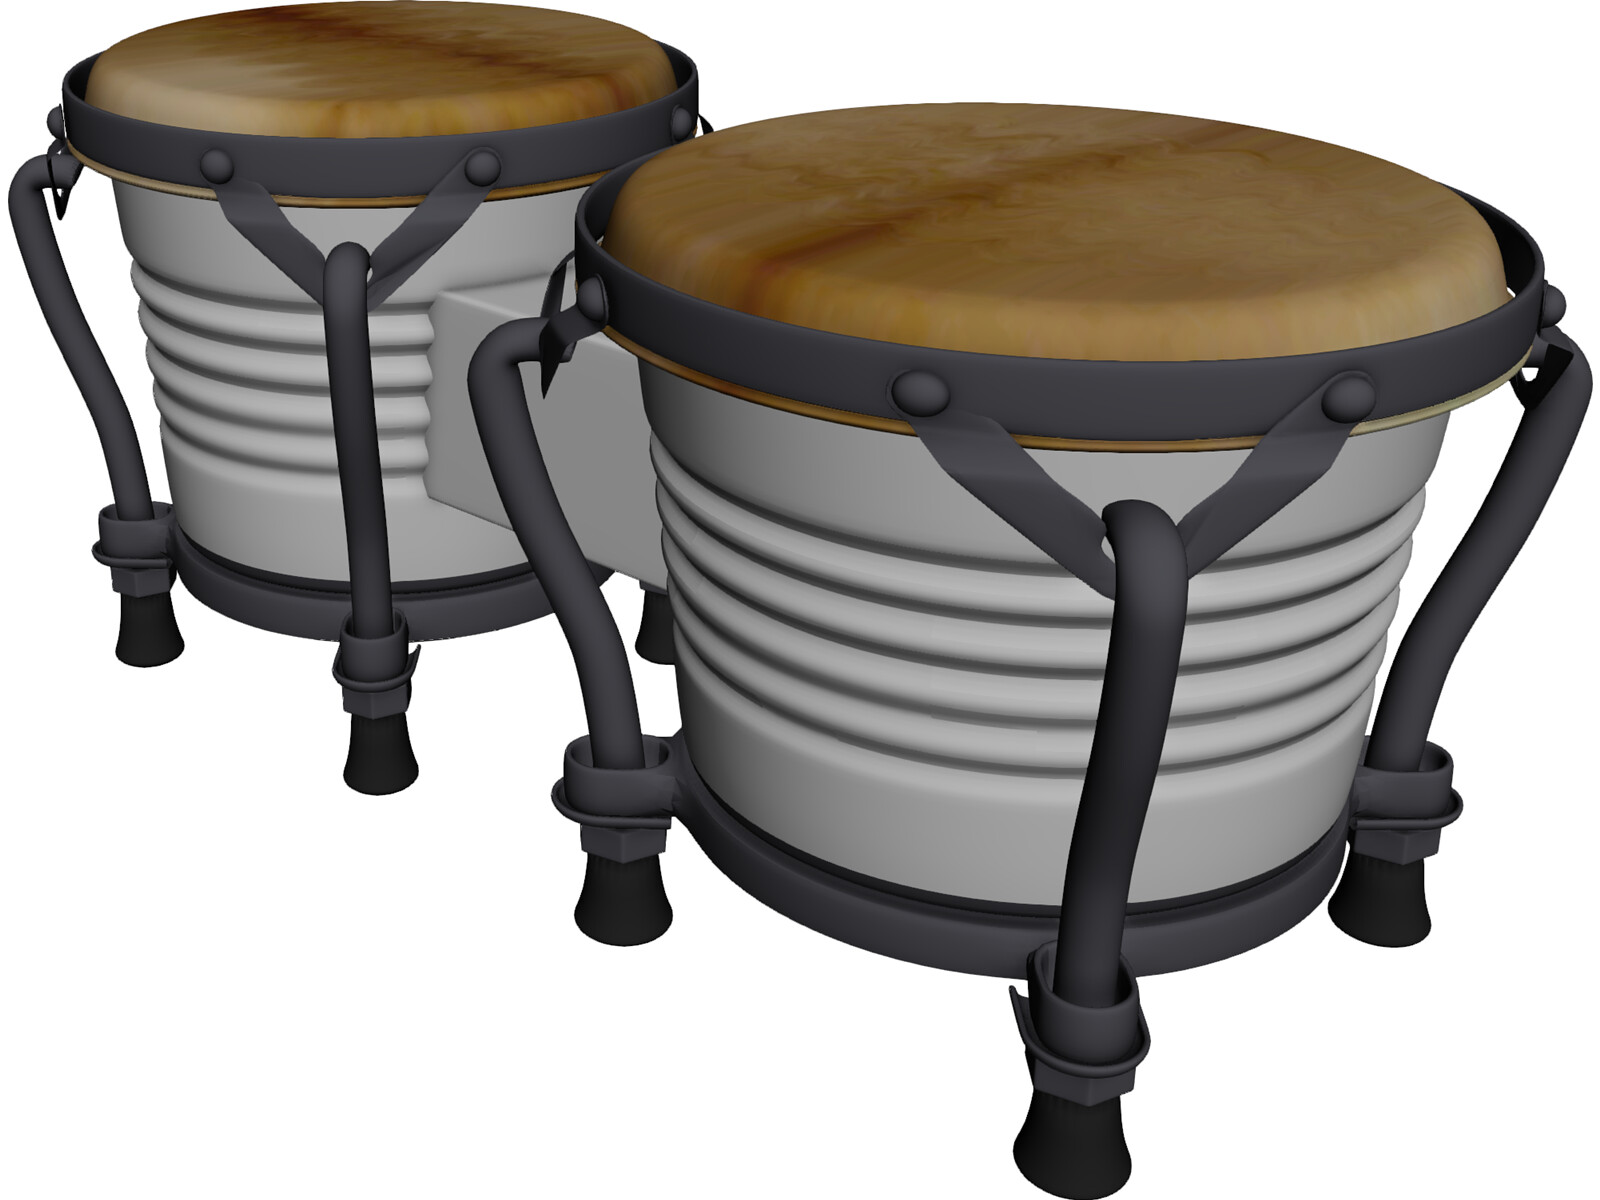 Bongos Pair 3D Model